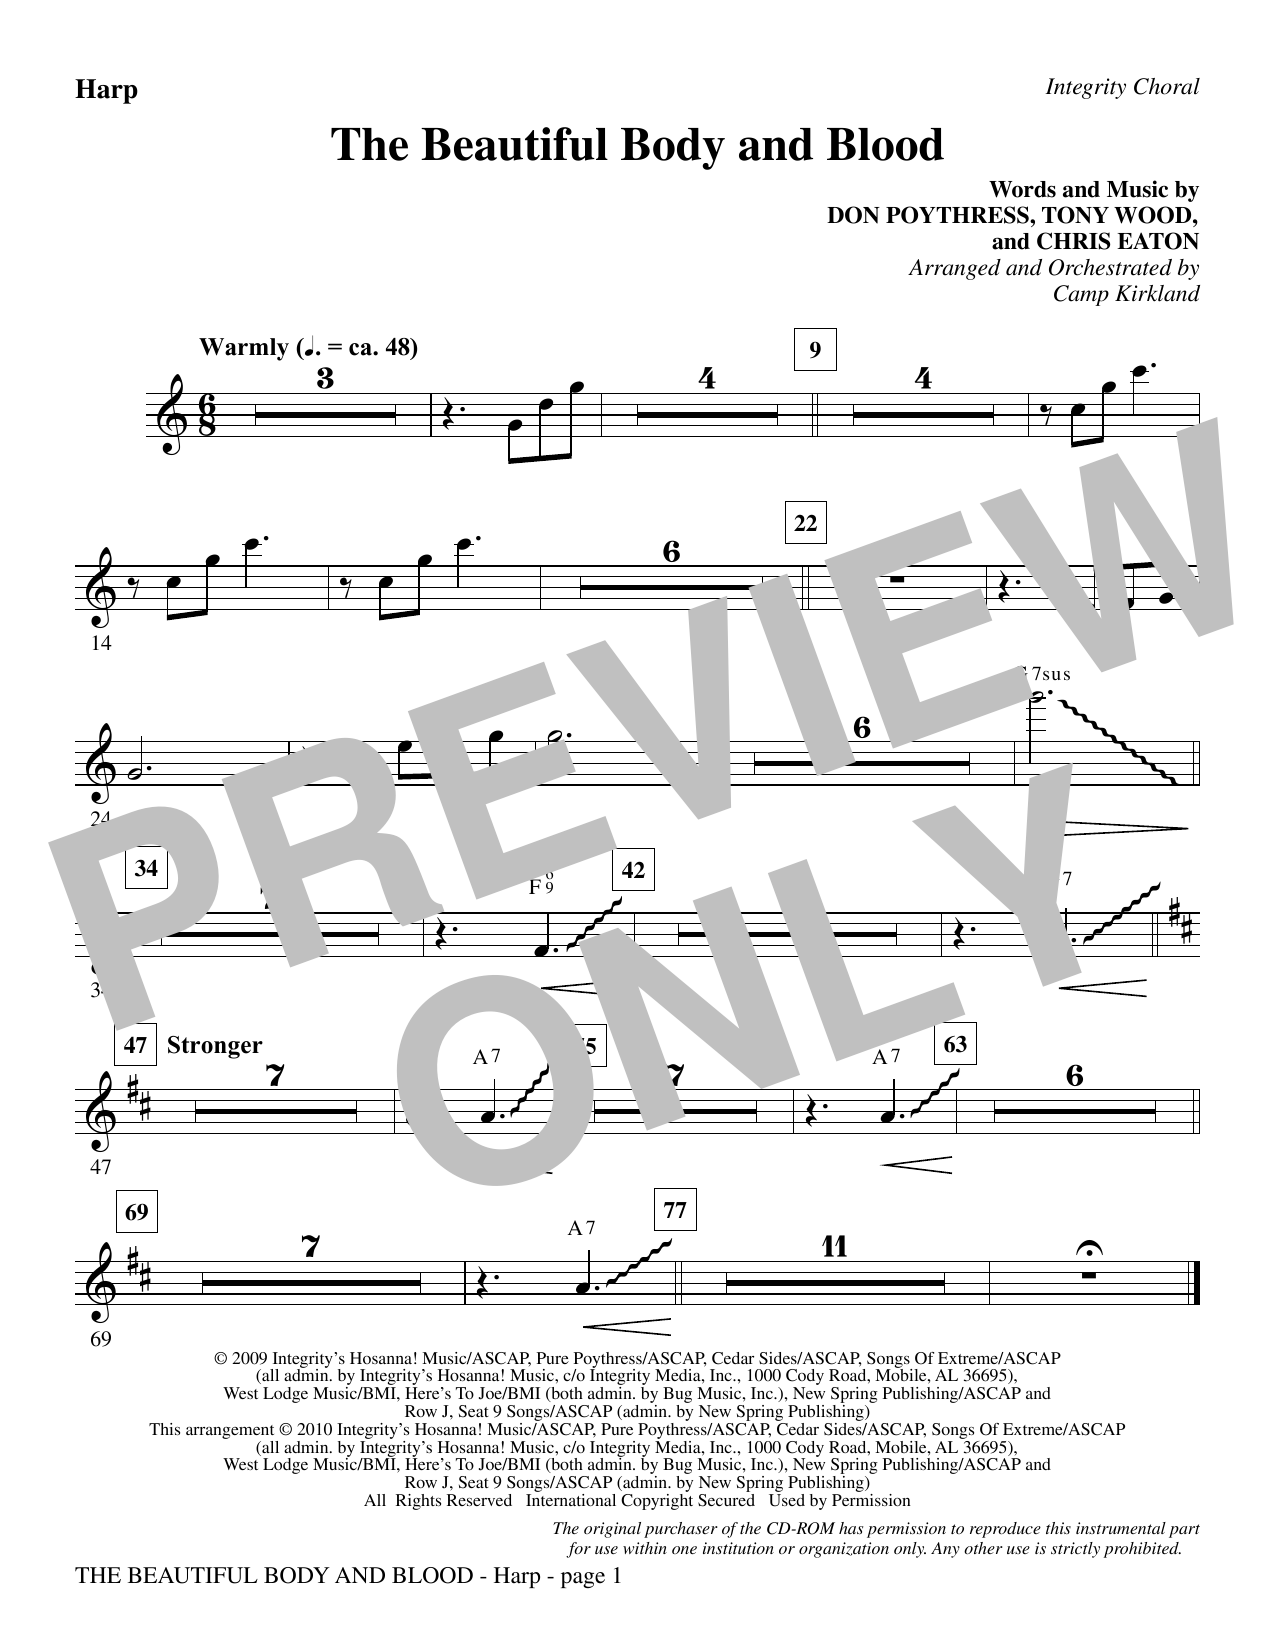 Camp Kirkland The Beautiful Body And Blood - Harp sheet music notes and chords. Download Printable PDF.